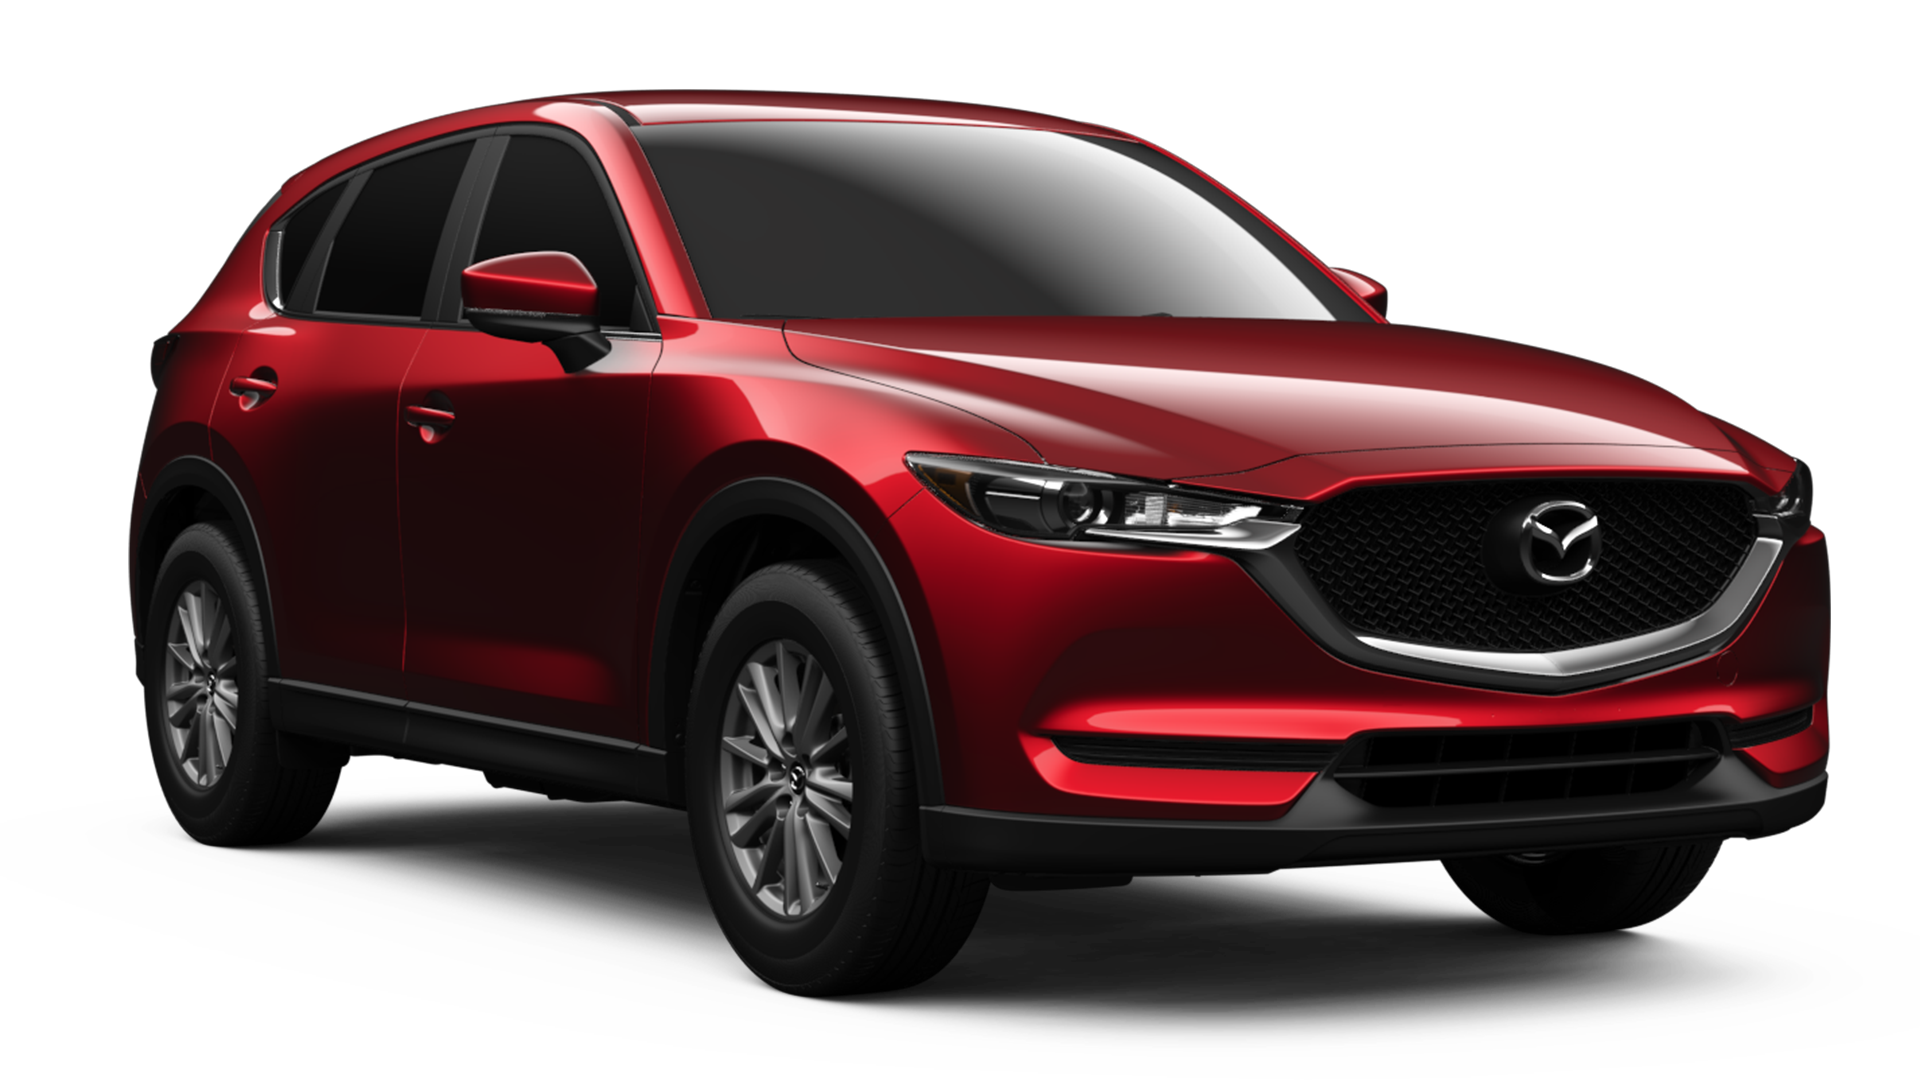 New Mazda CX-5 to Sport Yokohama Geolander Tires